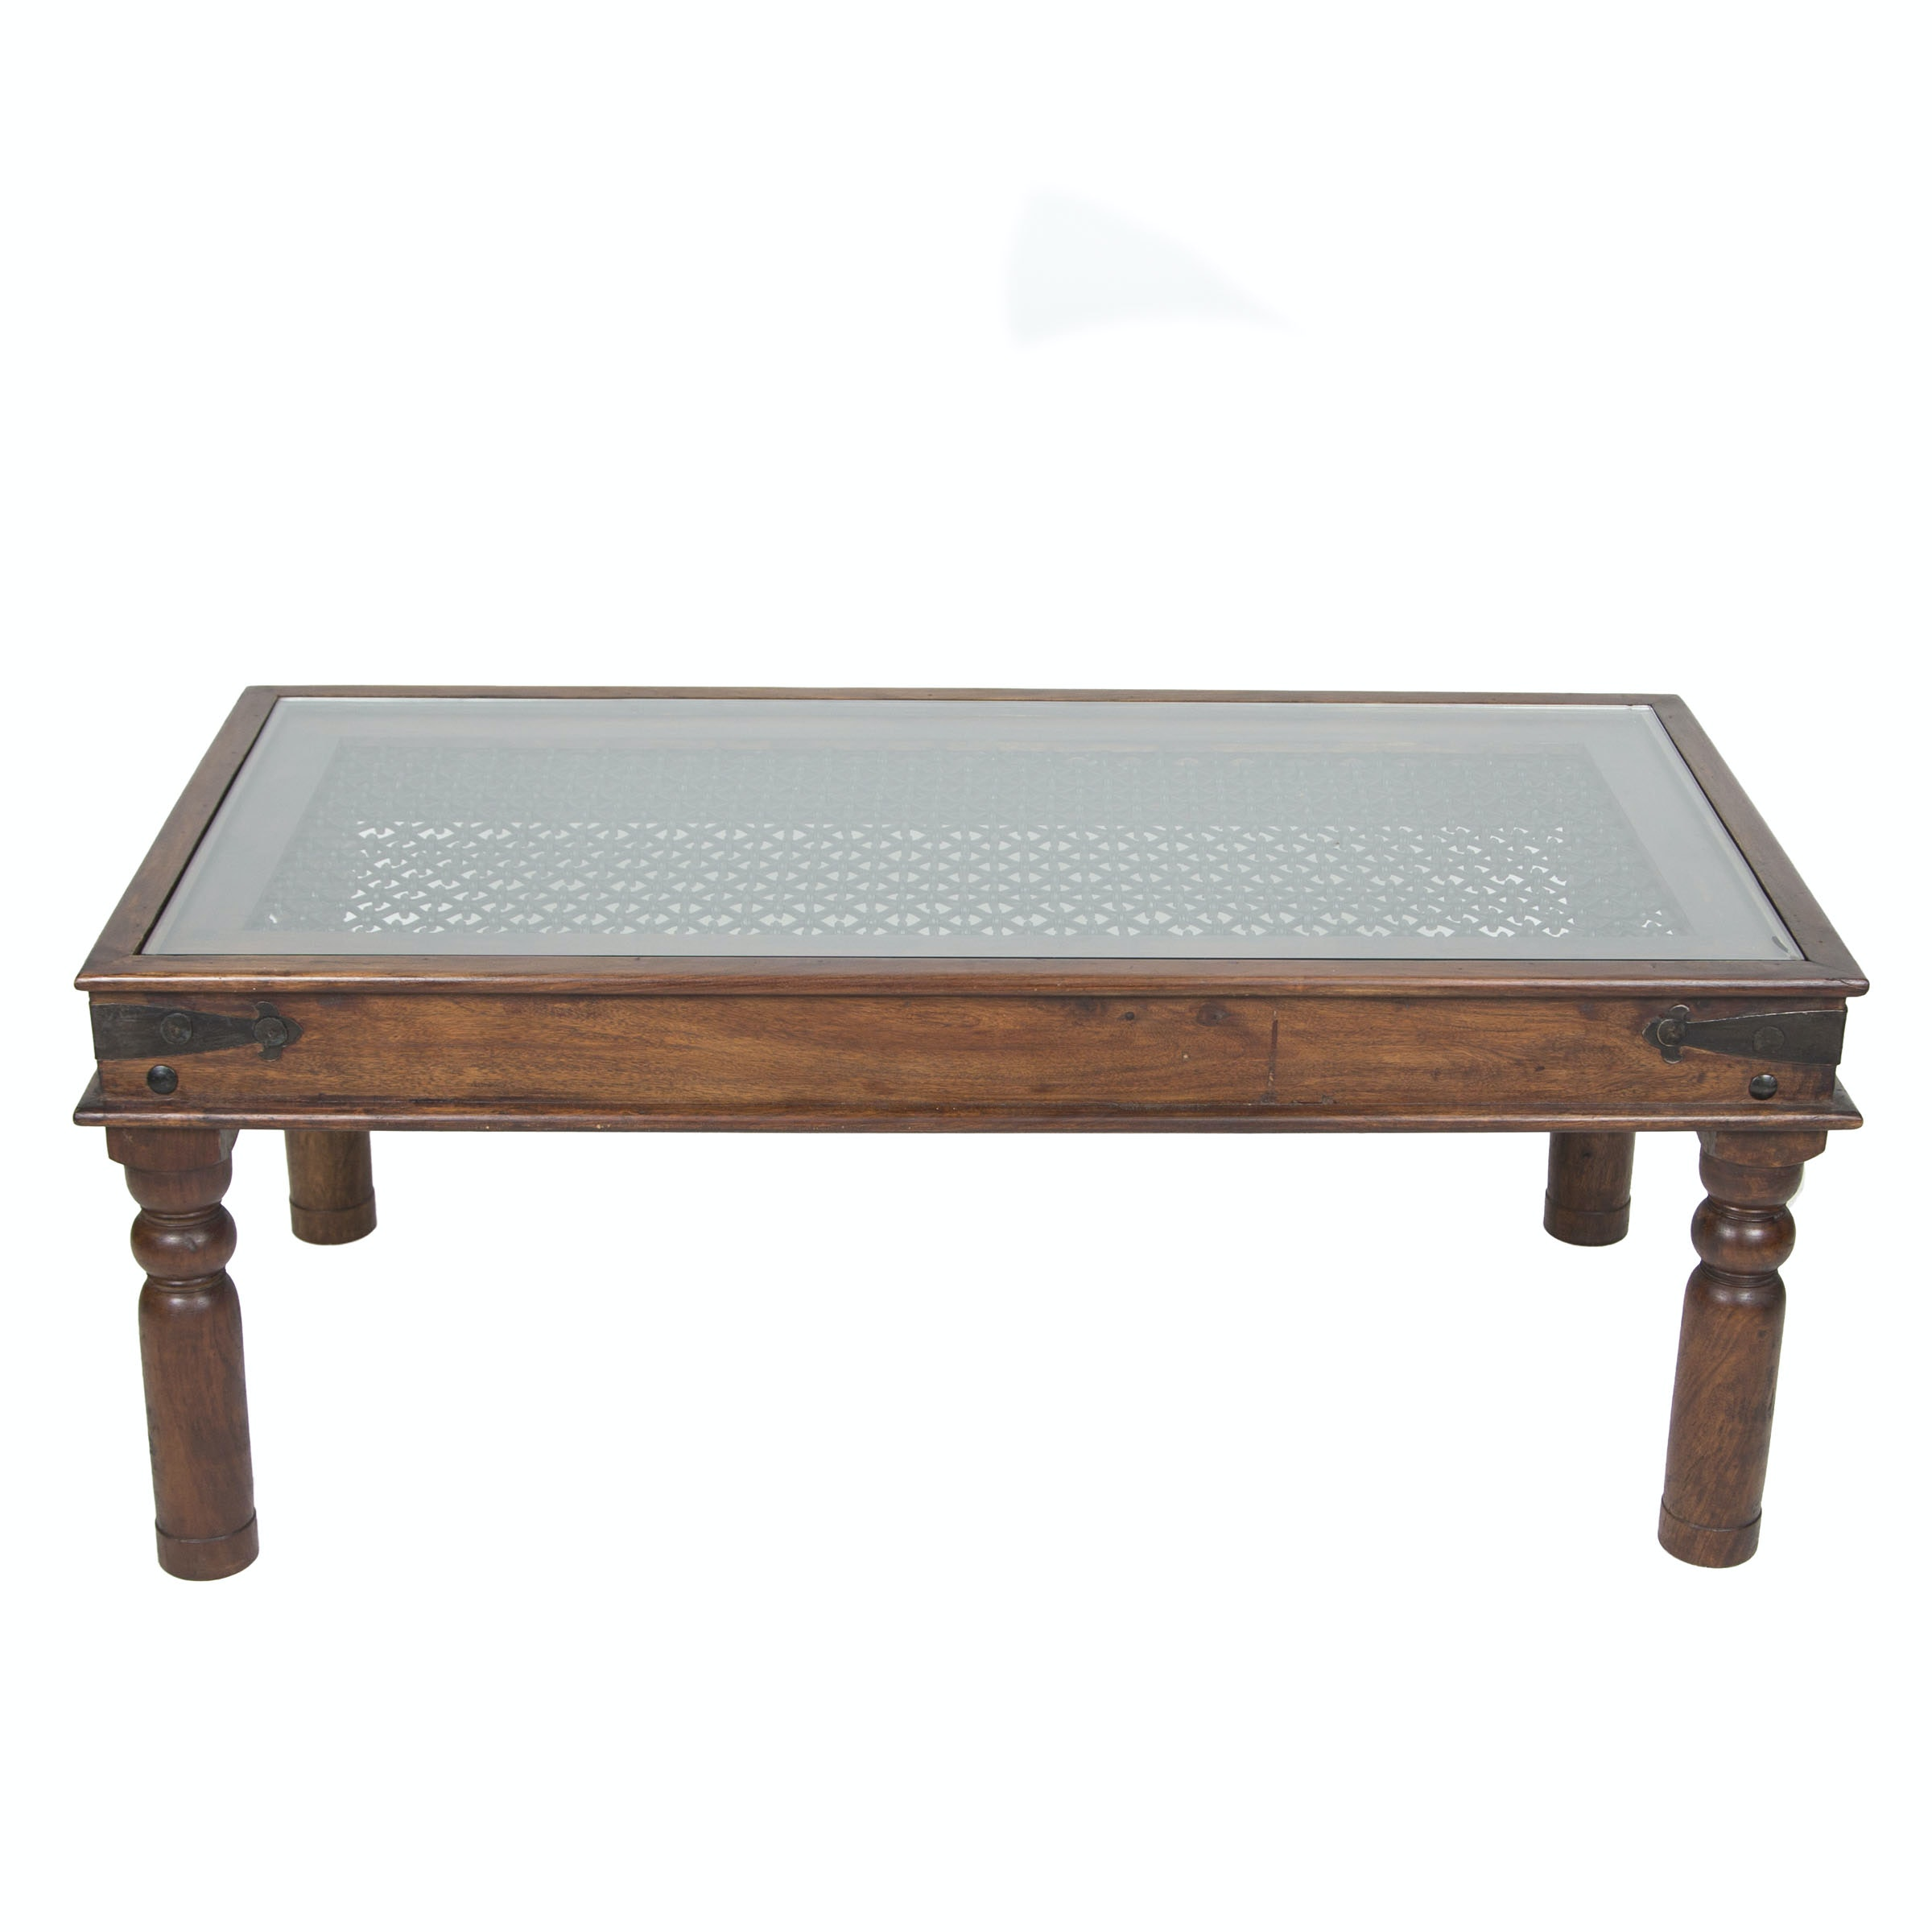 Anglo - Indian Style Coffee Table With Wrought Iron Grill Panel and Glass